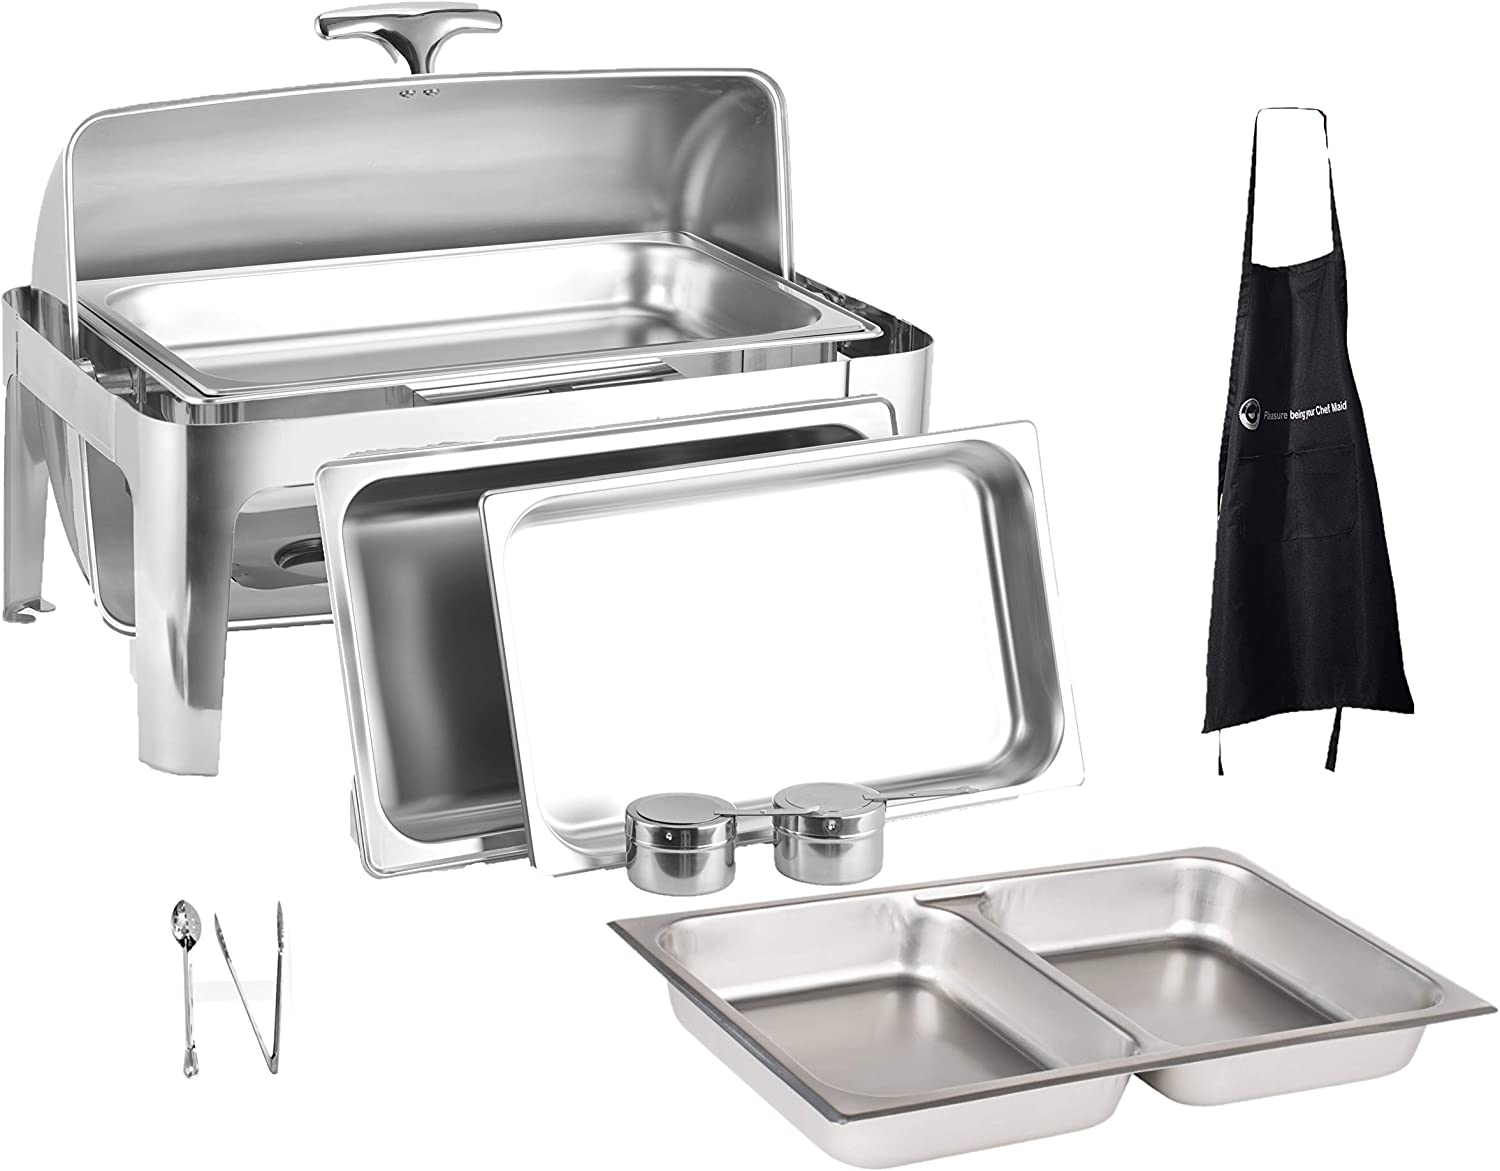 8 Qt Full Size Roll Top Chafing Dish Bundle Stainless Steel - 1 Full Size and Food Pans, 1 Water Pan, 1 Sectional Food Pan, 1 Tung and 1 Serving Spoon - Fuel Holders and Lid + Free Apron,